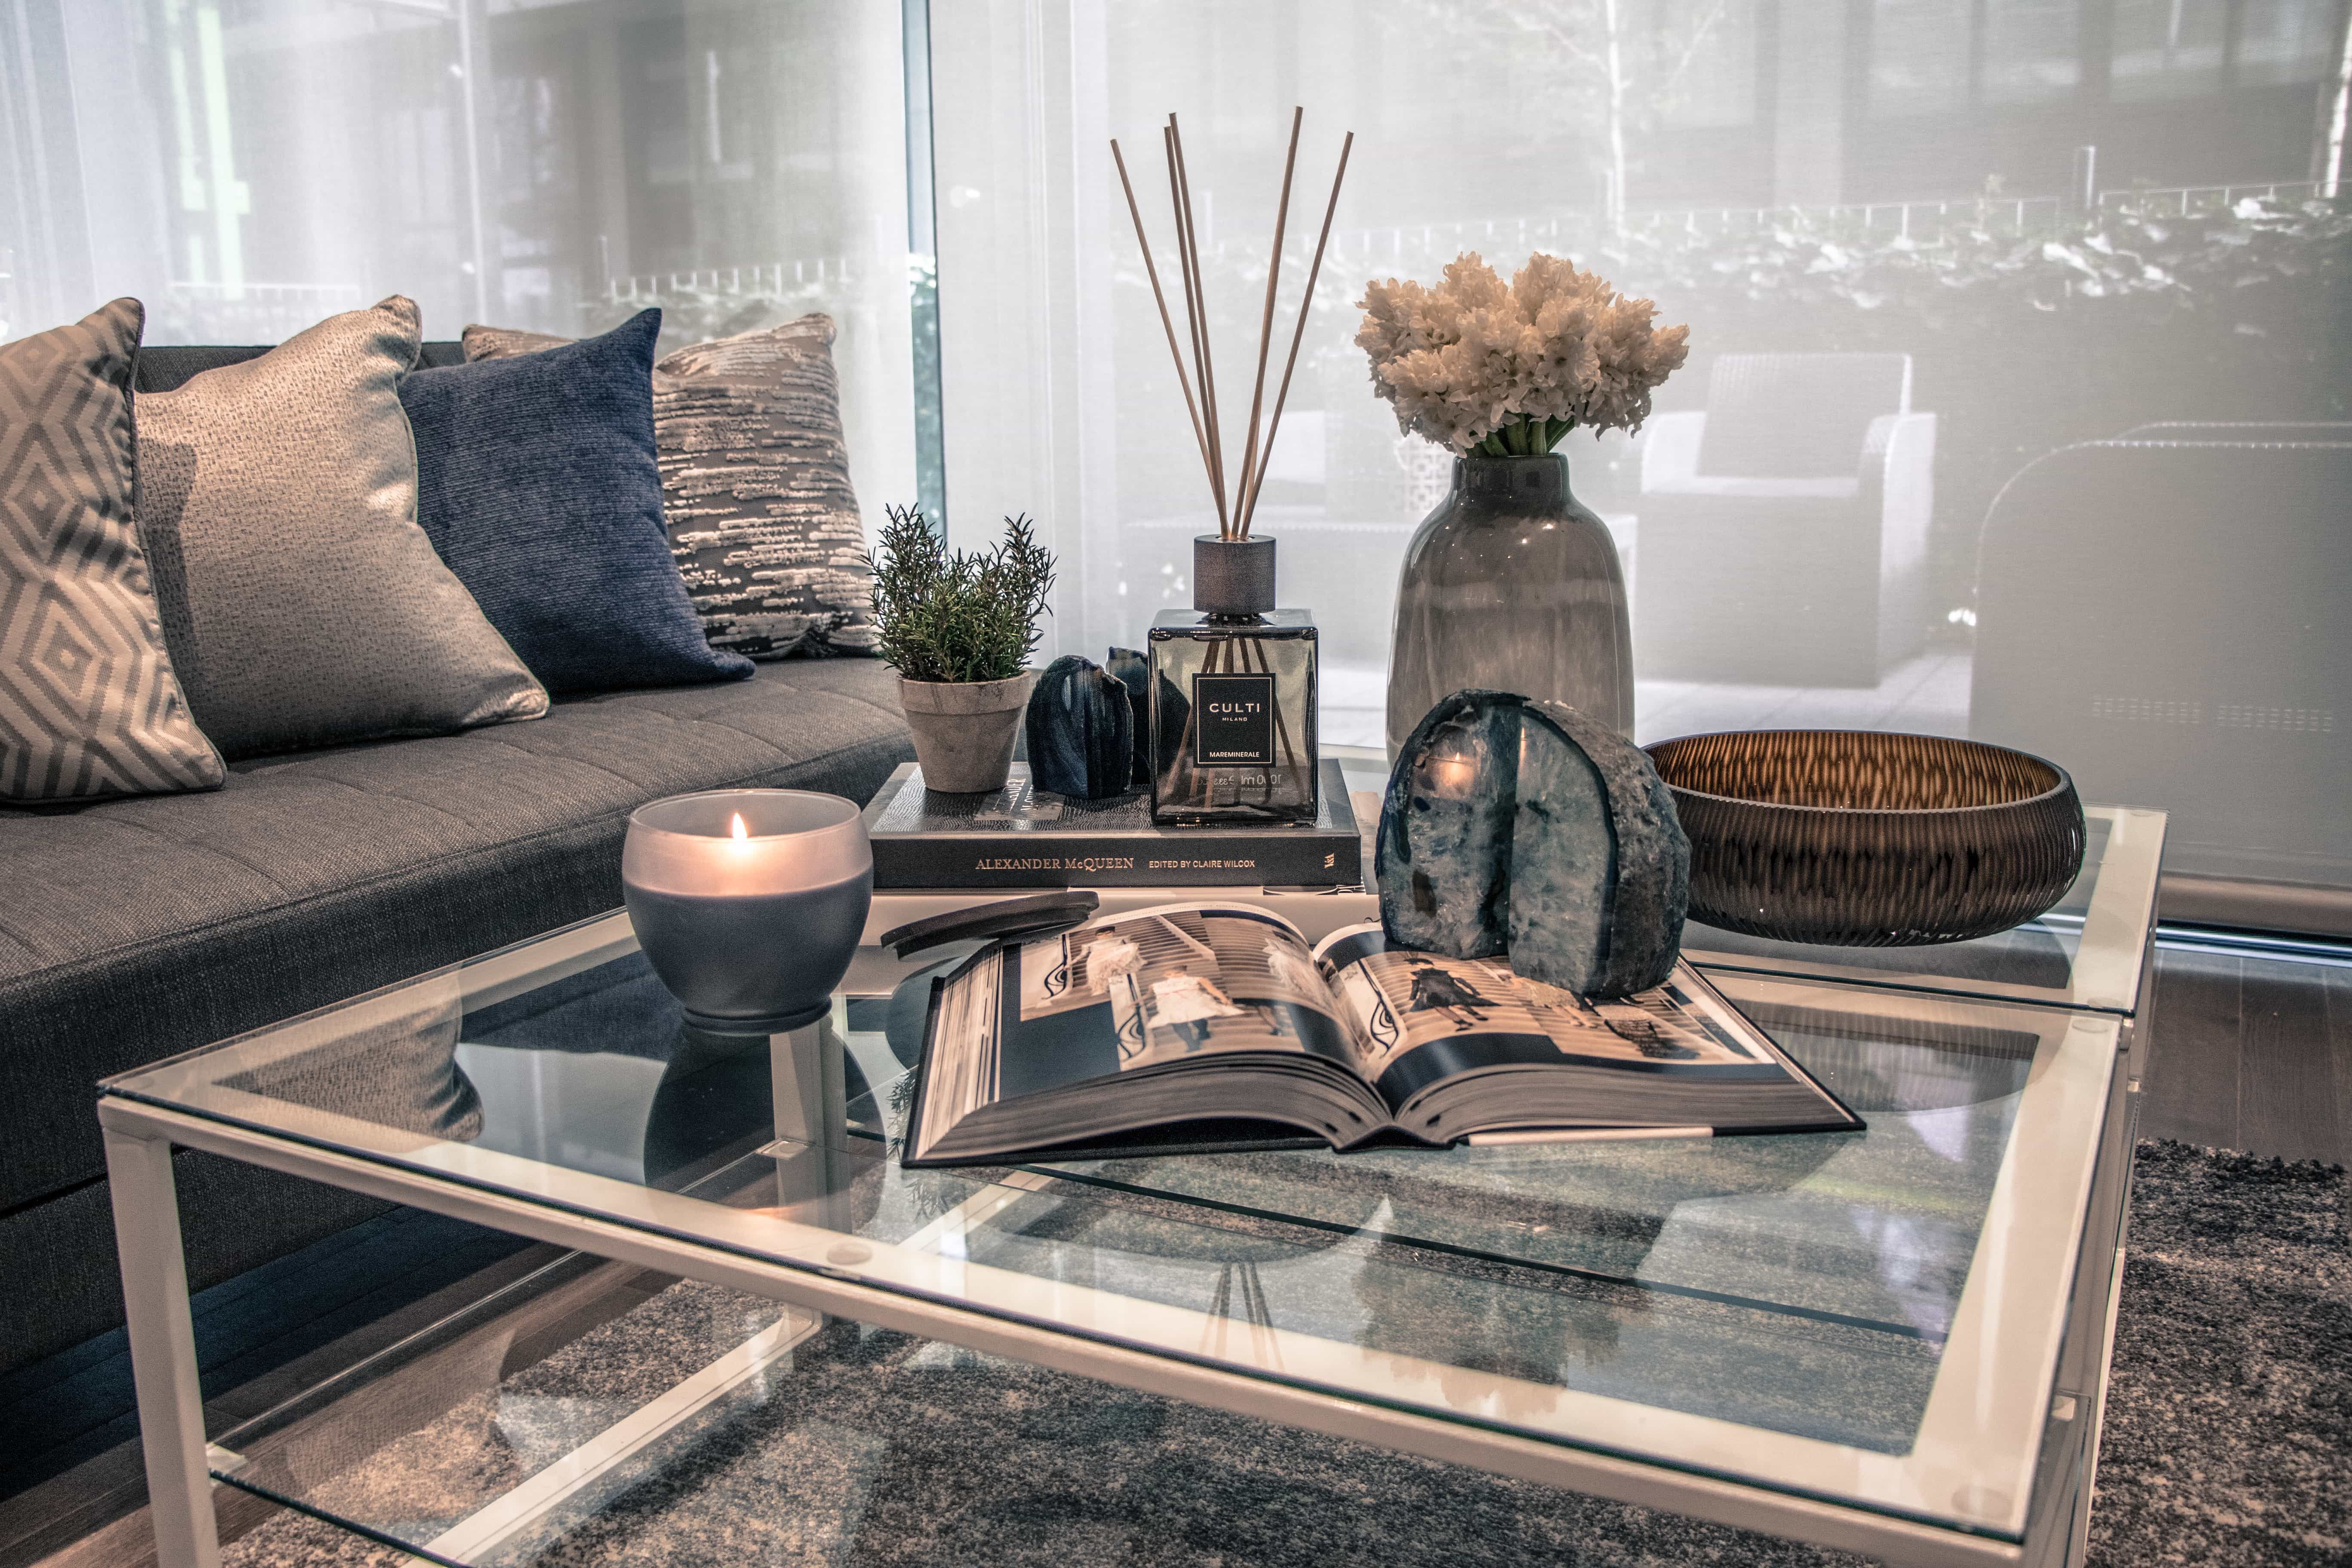 Riverlight_Interior_Edited-2